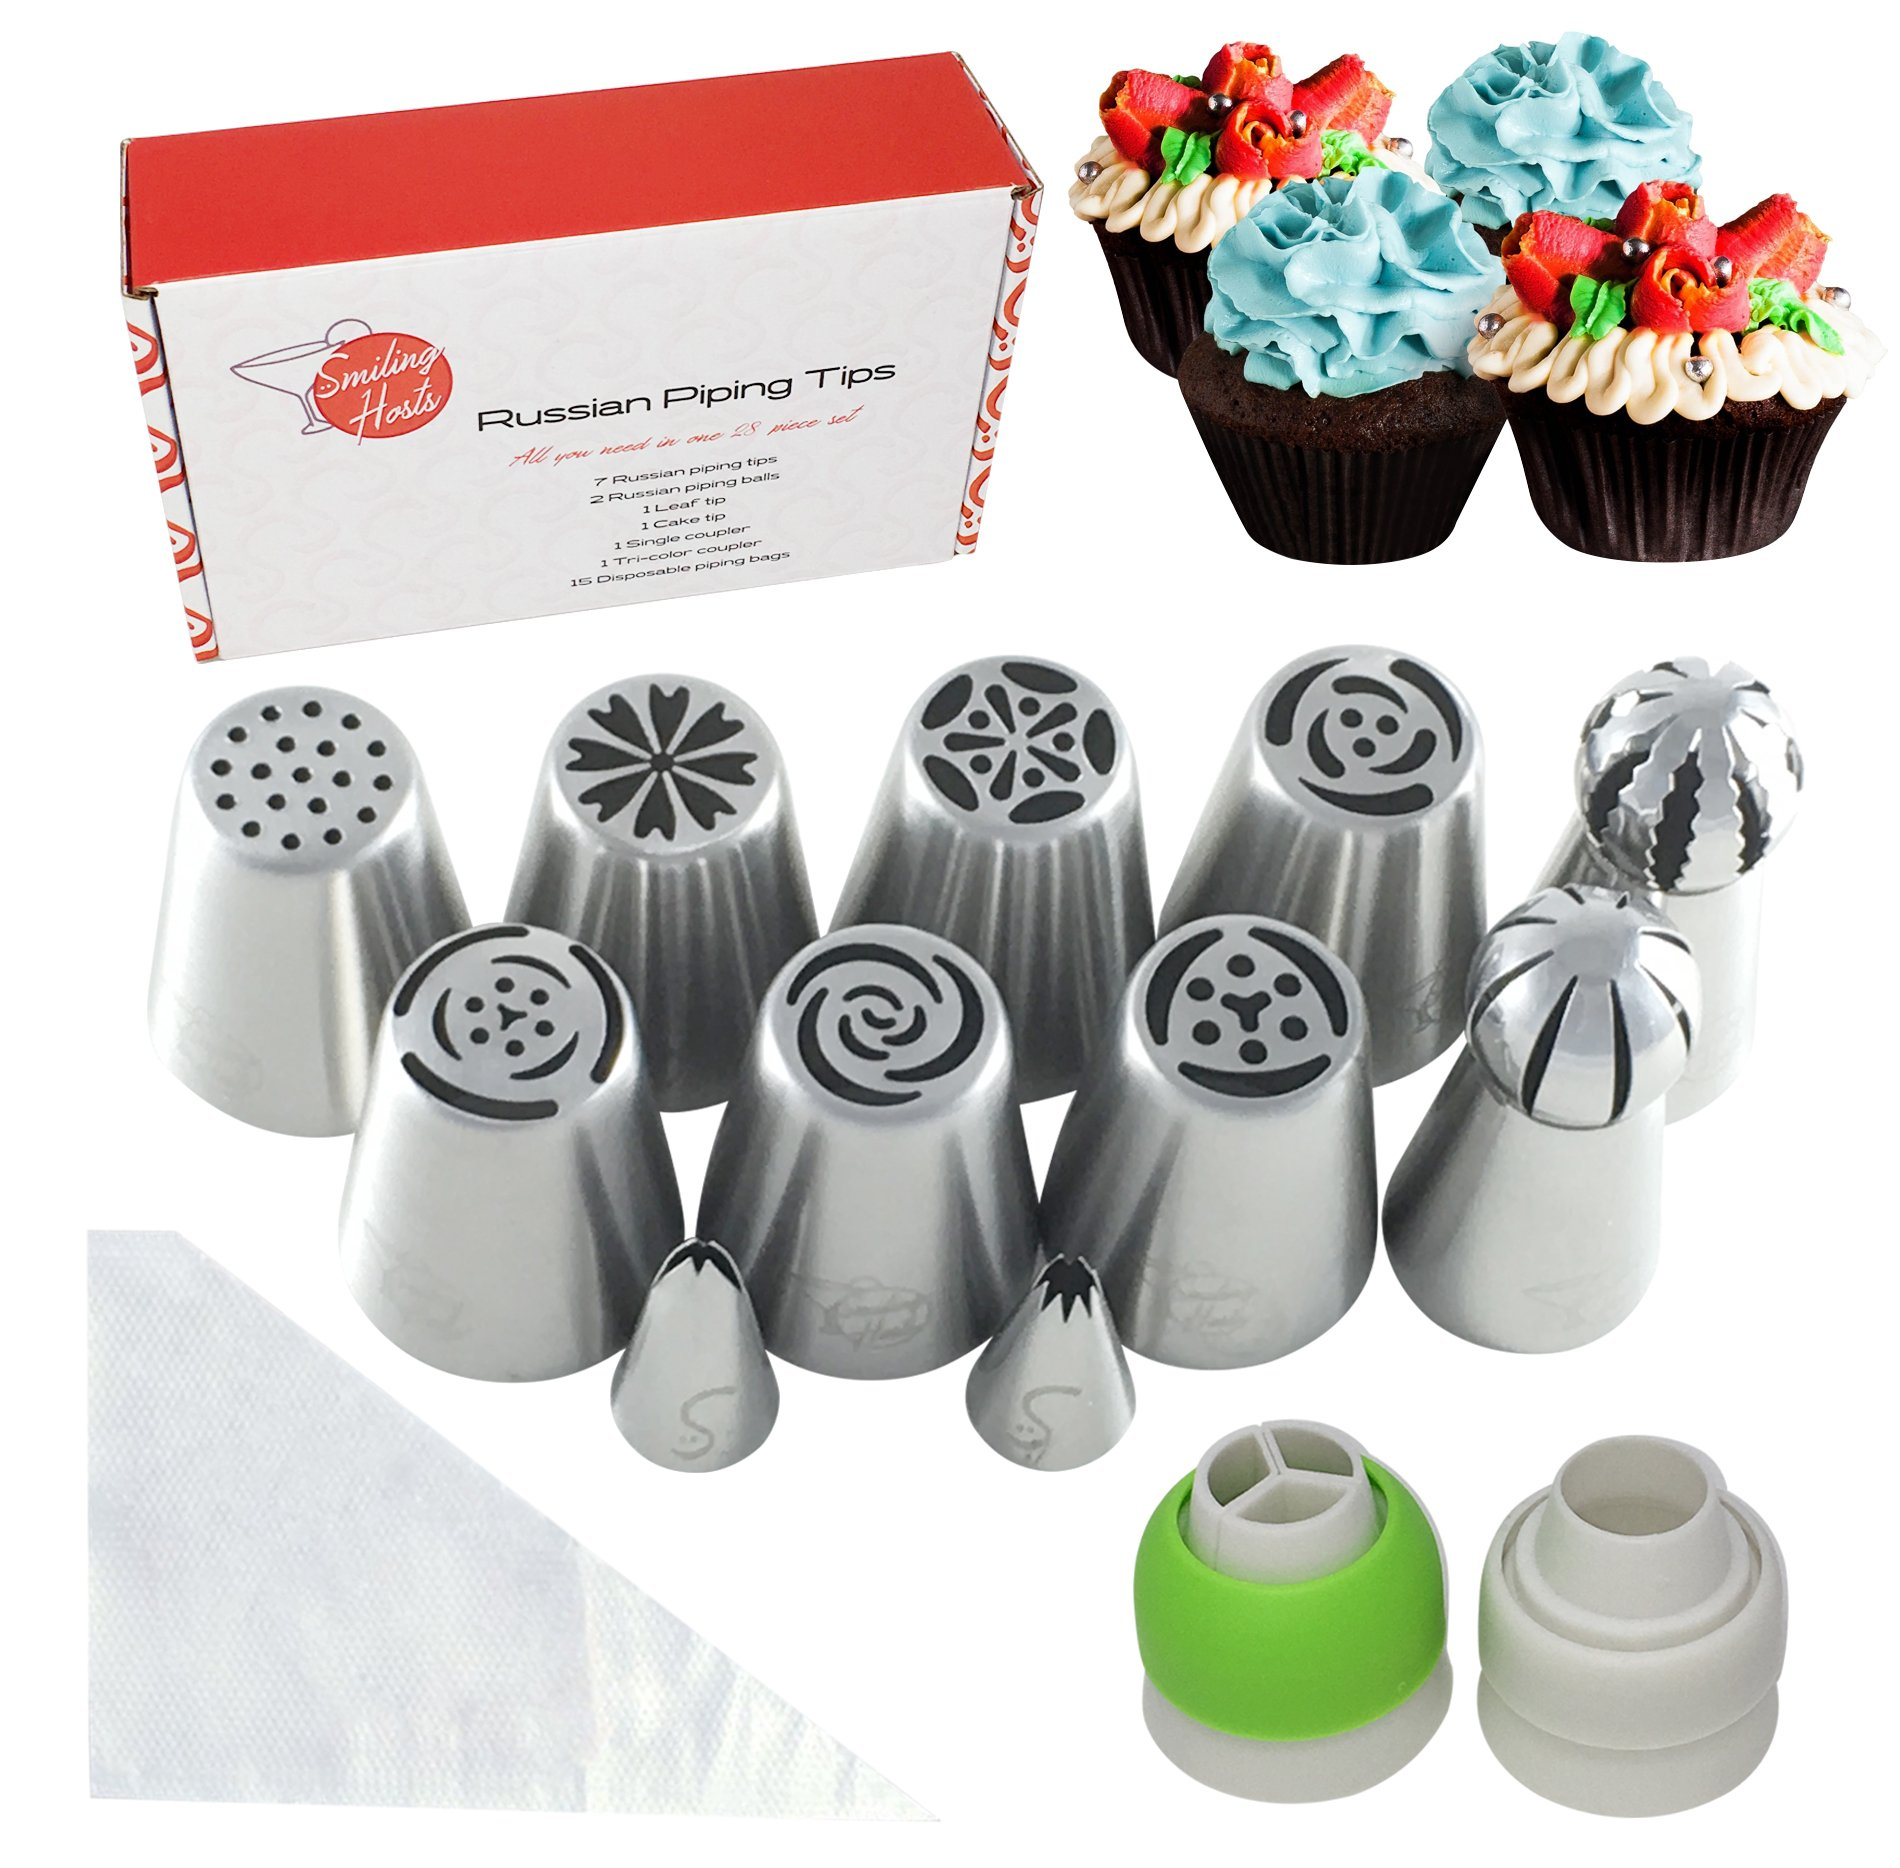 Russian Piping Tips Set - 28 Pieces with Nozzles, Couplers, Sphere Ball Tips and Cake Decorating Tip to Create Stunning Flowers and the Perfect Icing Swirl - for Cakes, Cupcakes, and Other Desserts